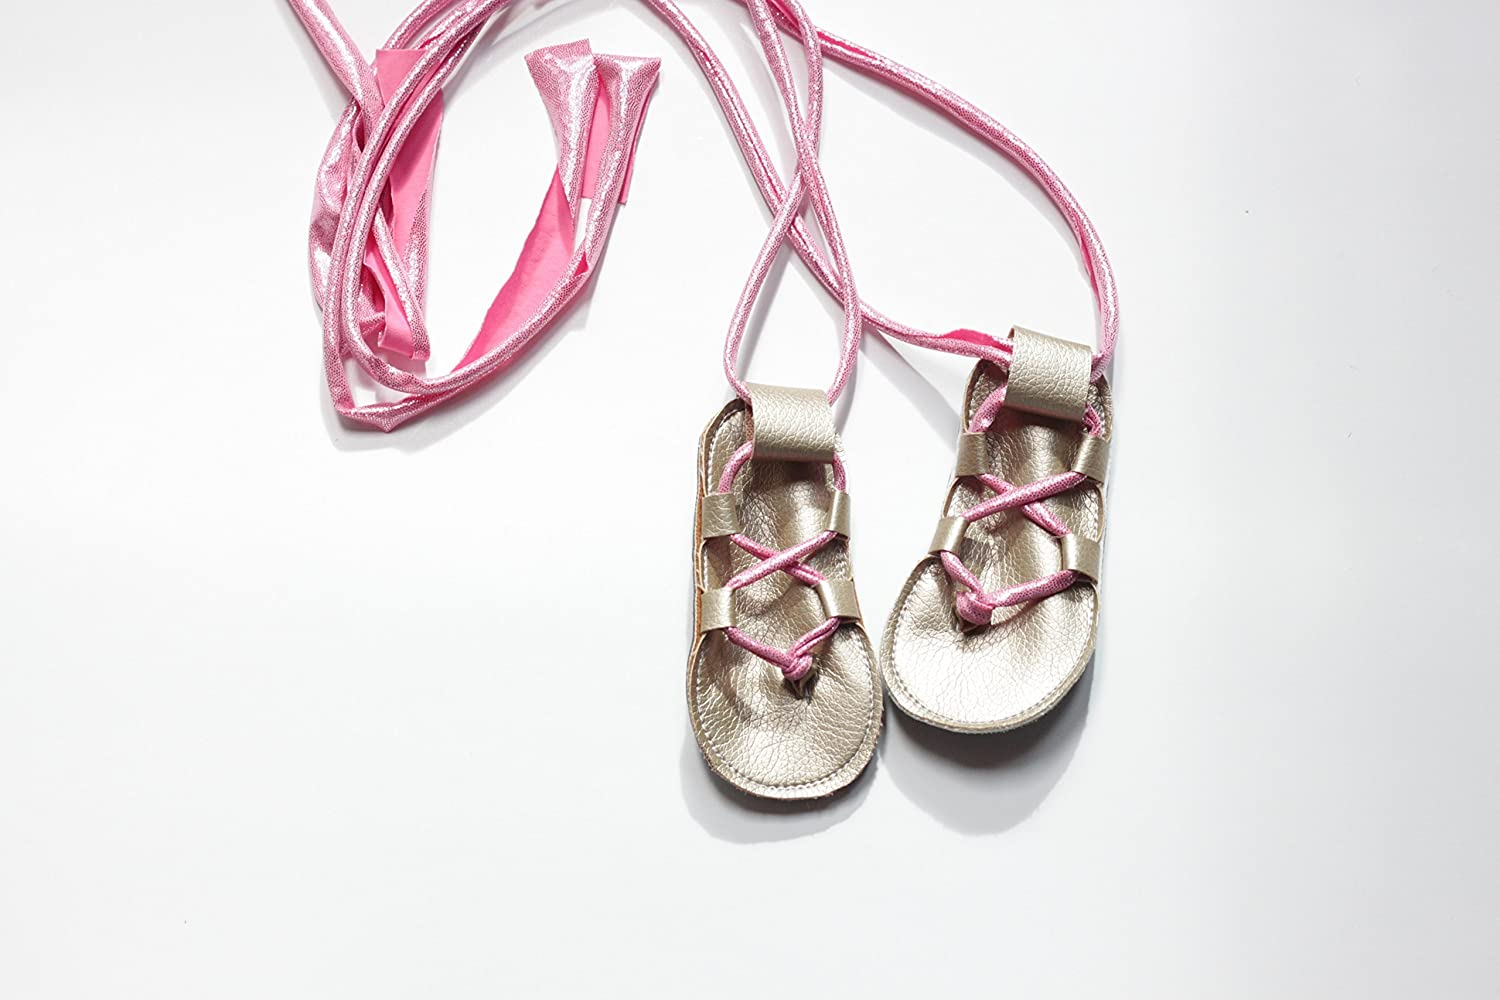 Amazon.com: baby gladiator sandals, baby Jesus shoes, toddler lace sandals: Handmade